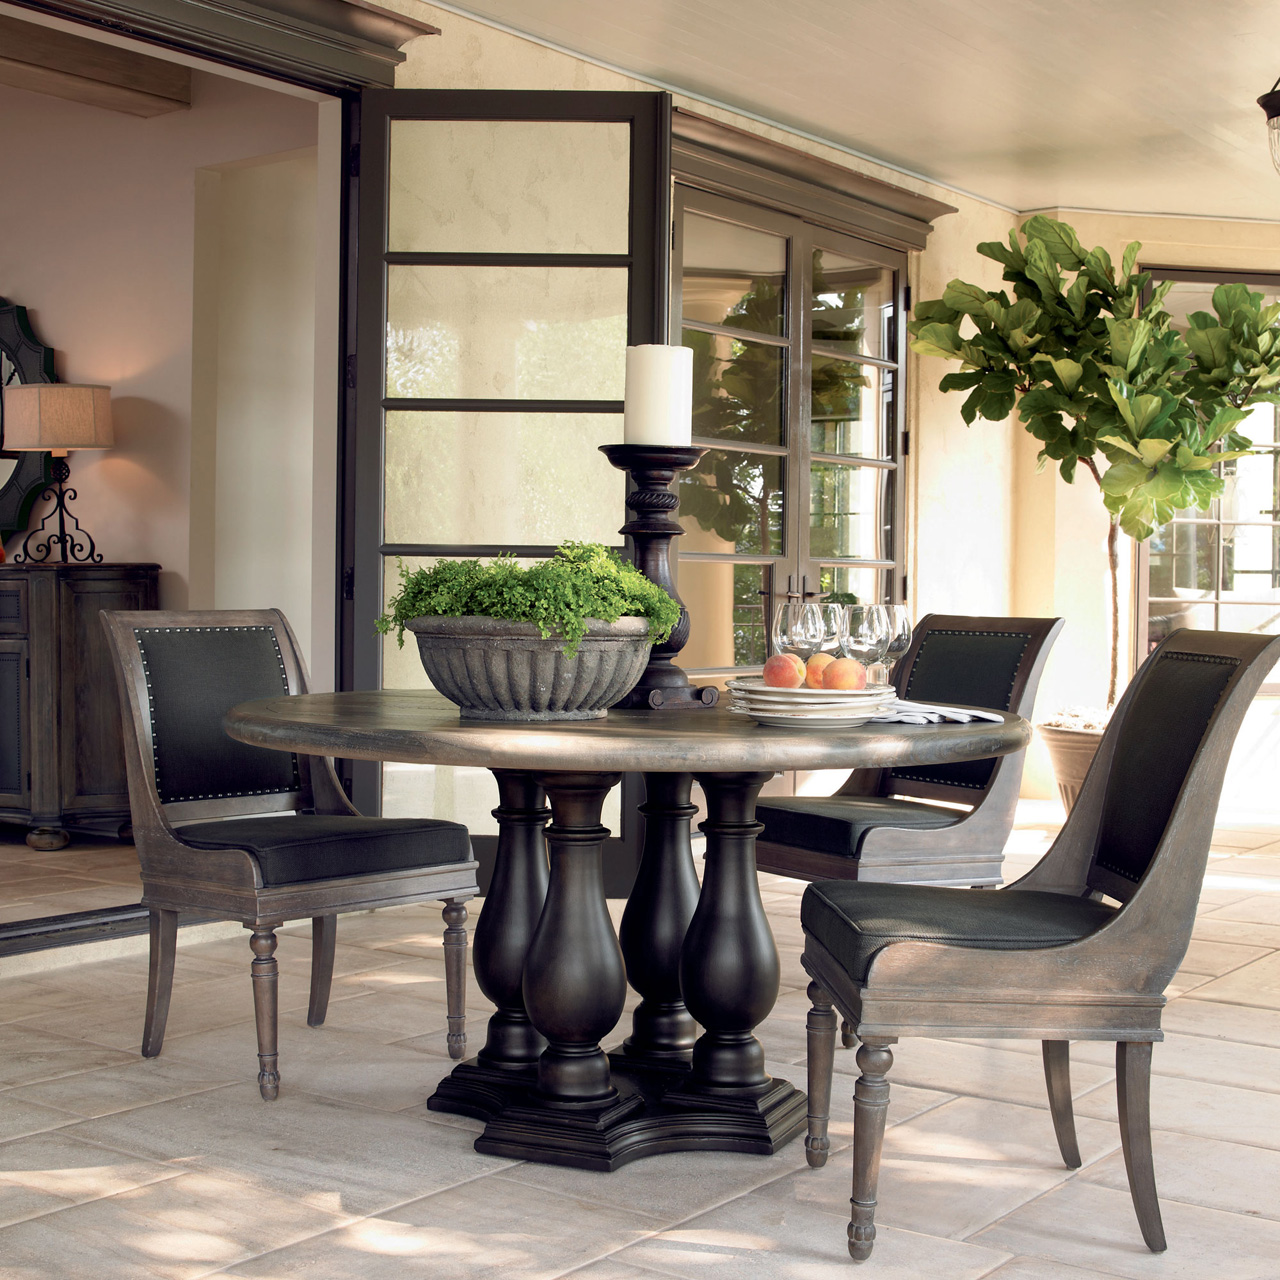 dining room furniture on rooms to go dining room furniture id=69101